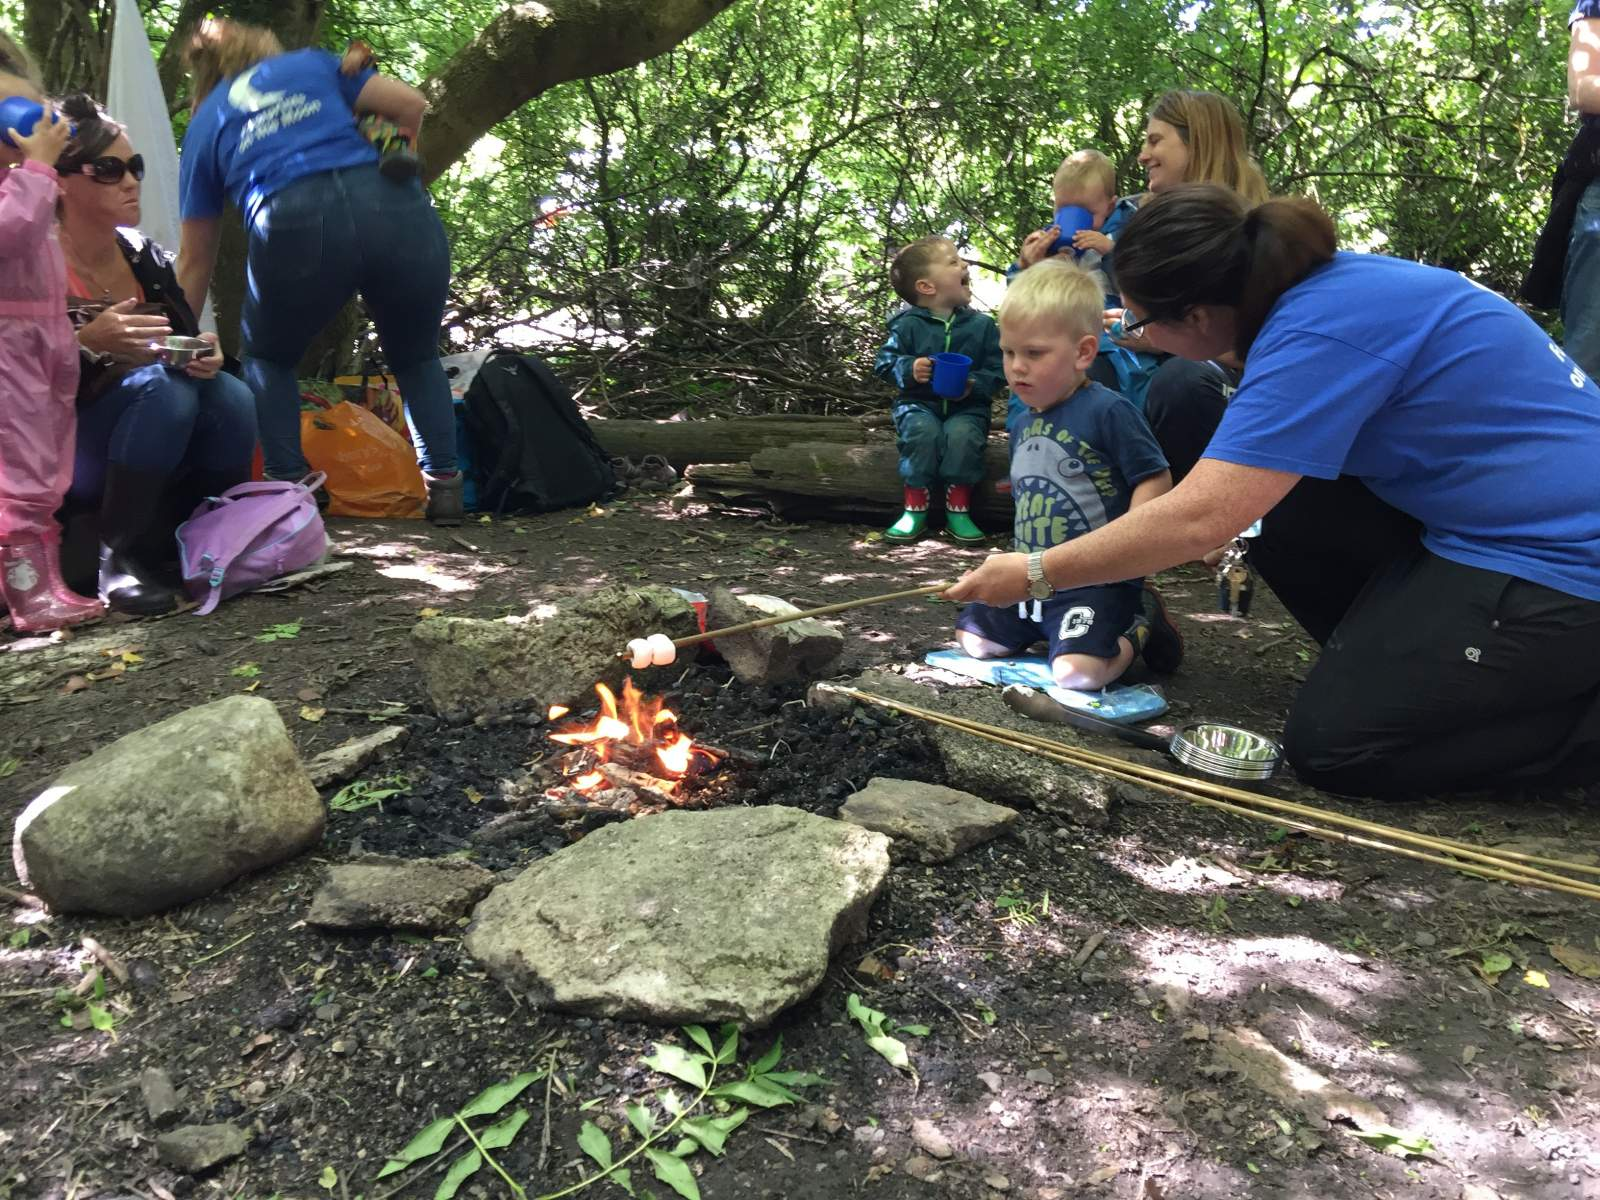 toasting marshmallows on the camp fire at forest school in plessey woods